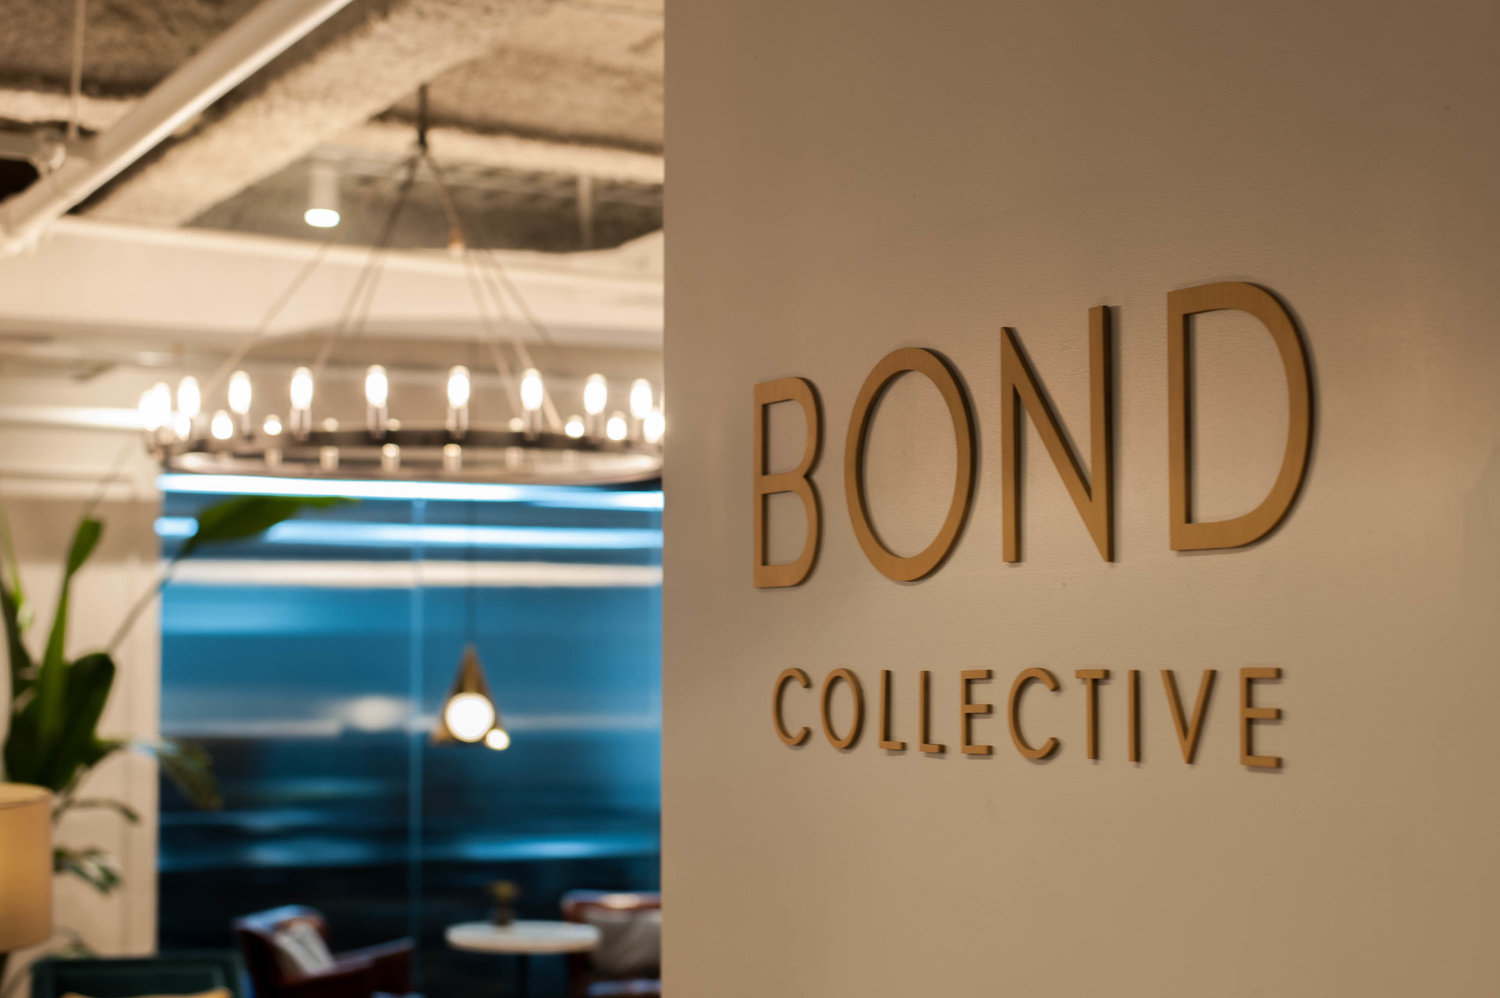 reception area and wall with Bond Collective sign welcoming visitors